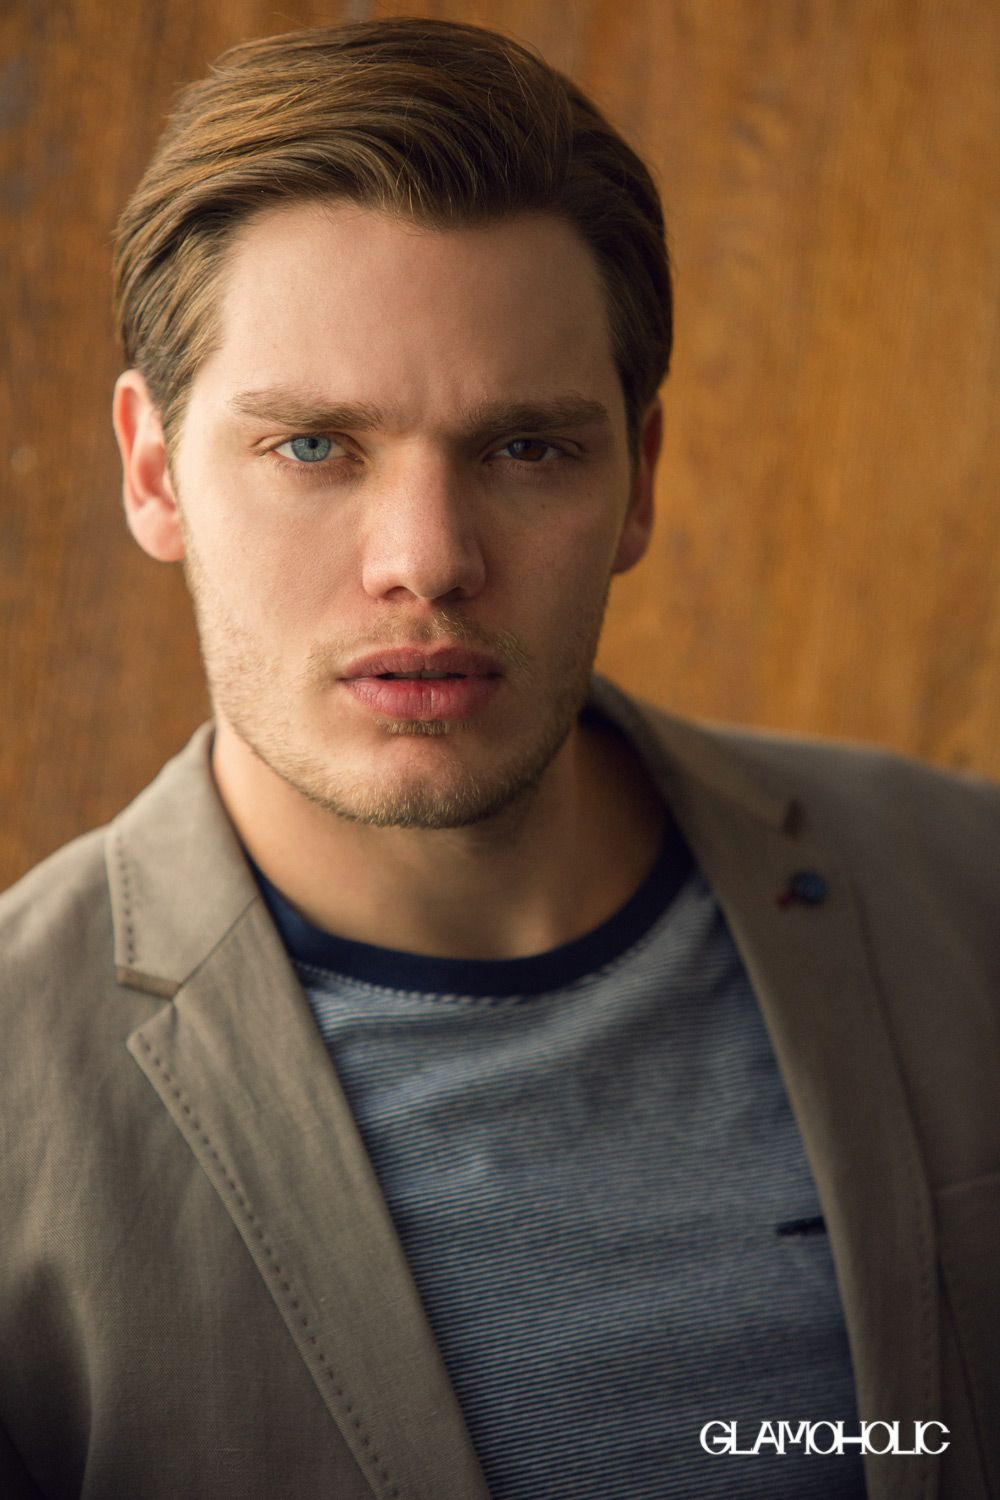 Dominic Sherwood (born 1990) Dominic Sherwood (born 1990) new picture